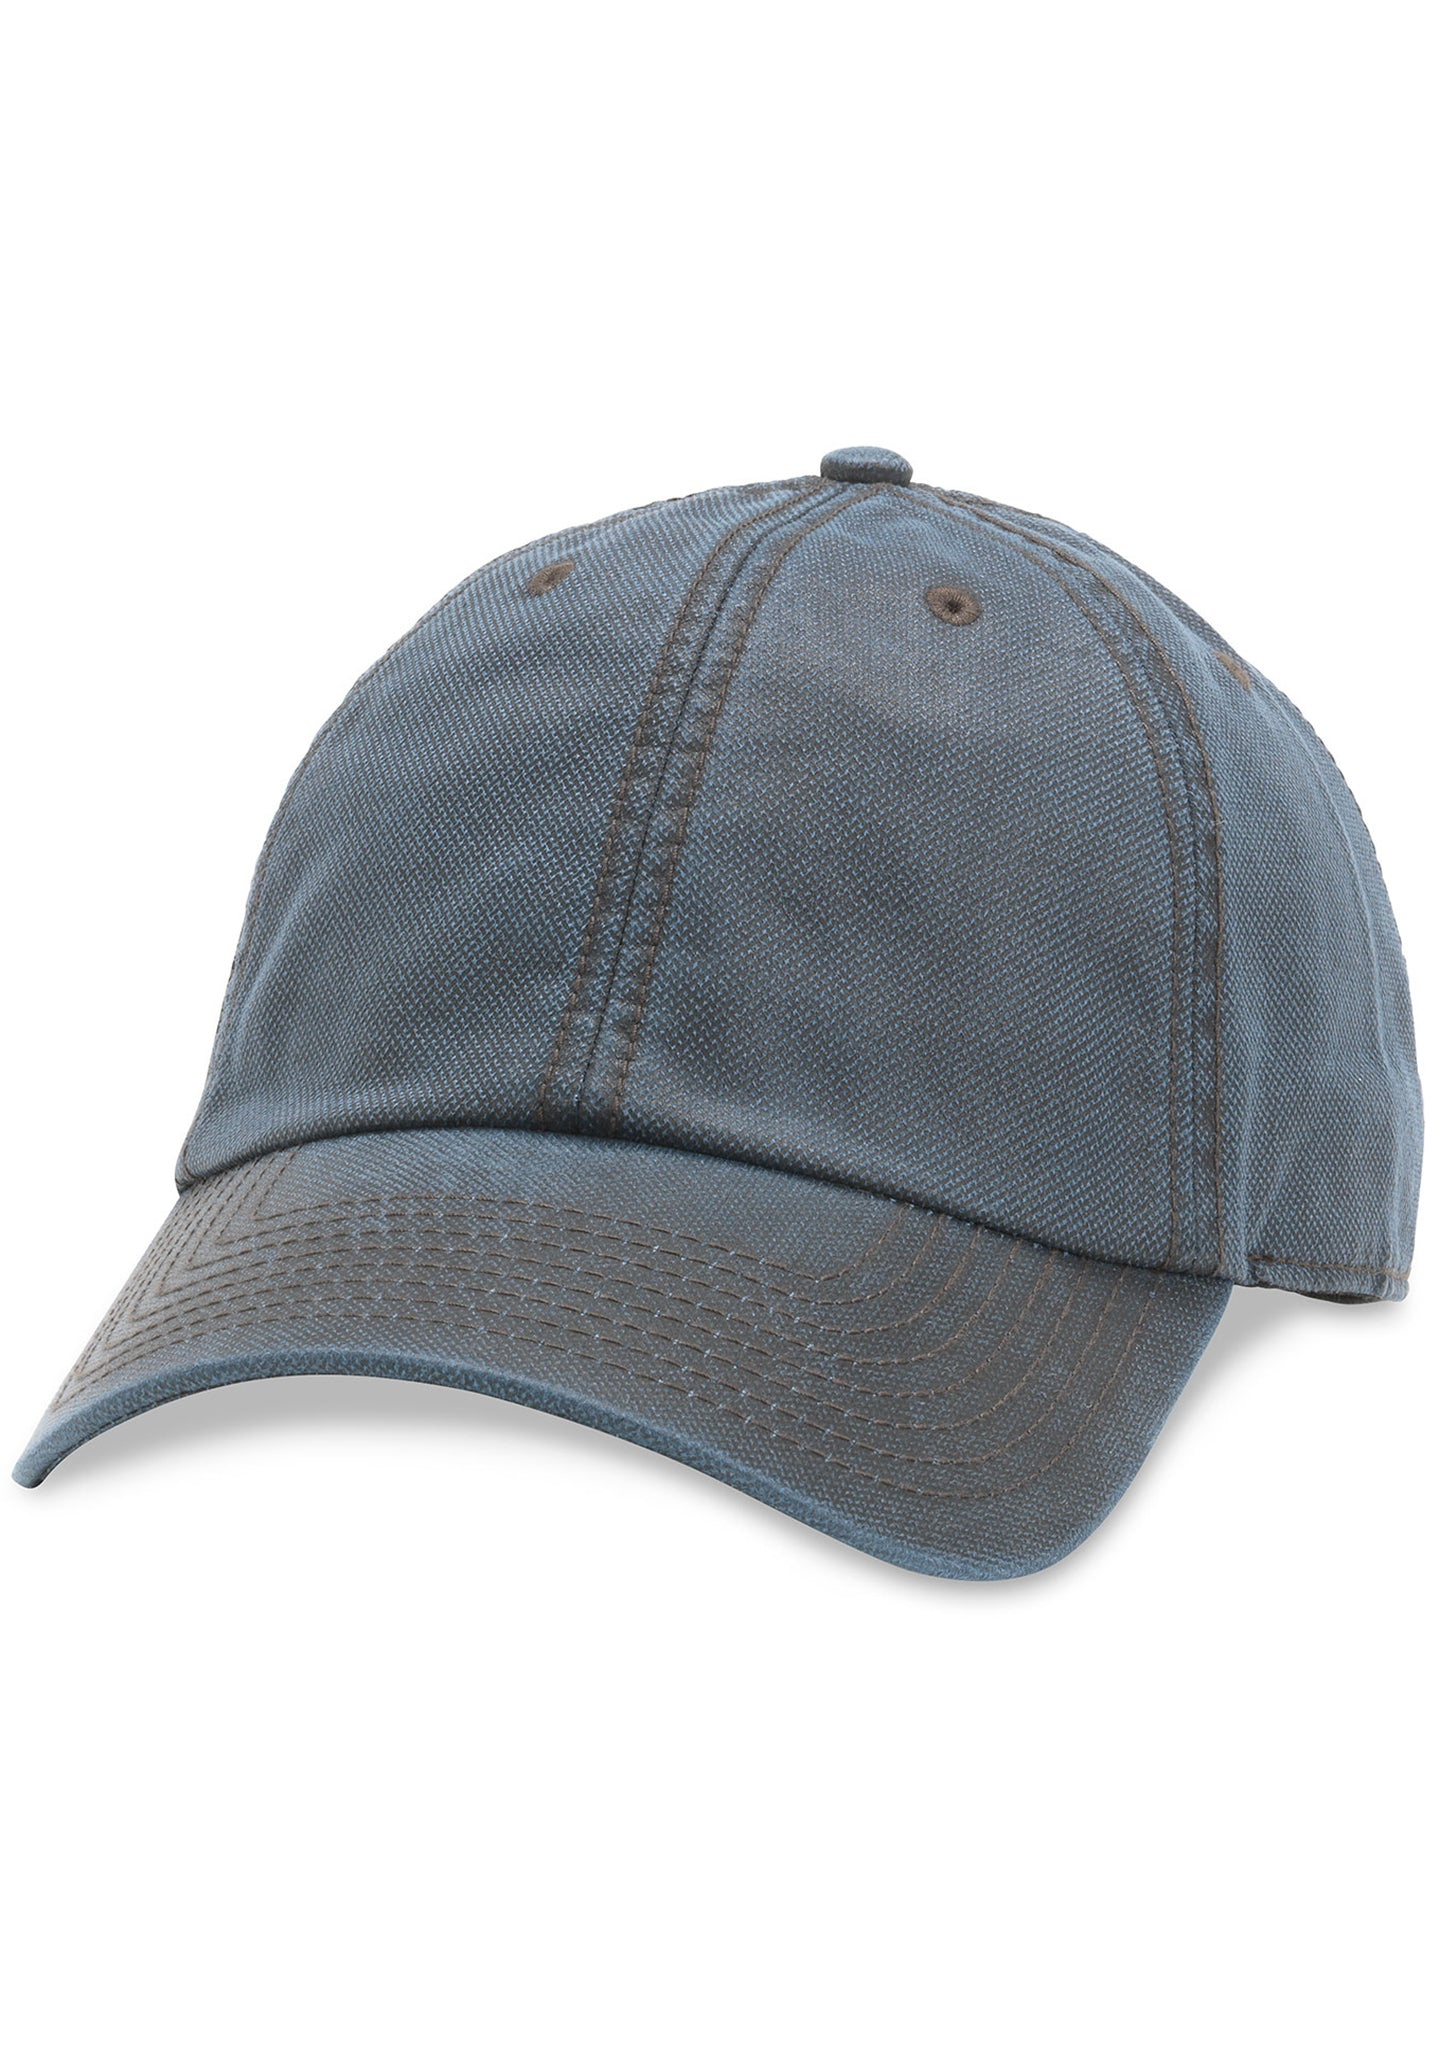 American Needle Blank Woodlawn Curved Brim Hat in Navy